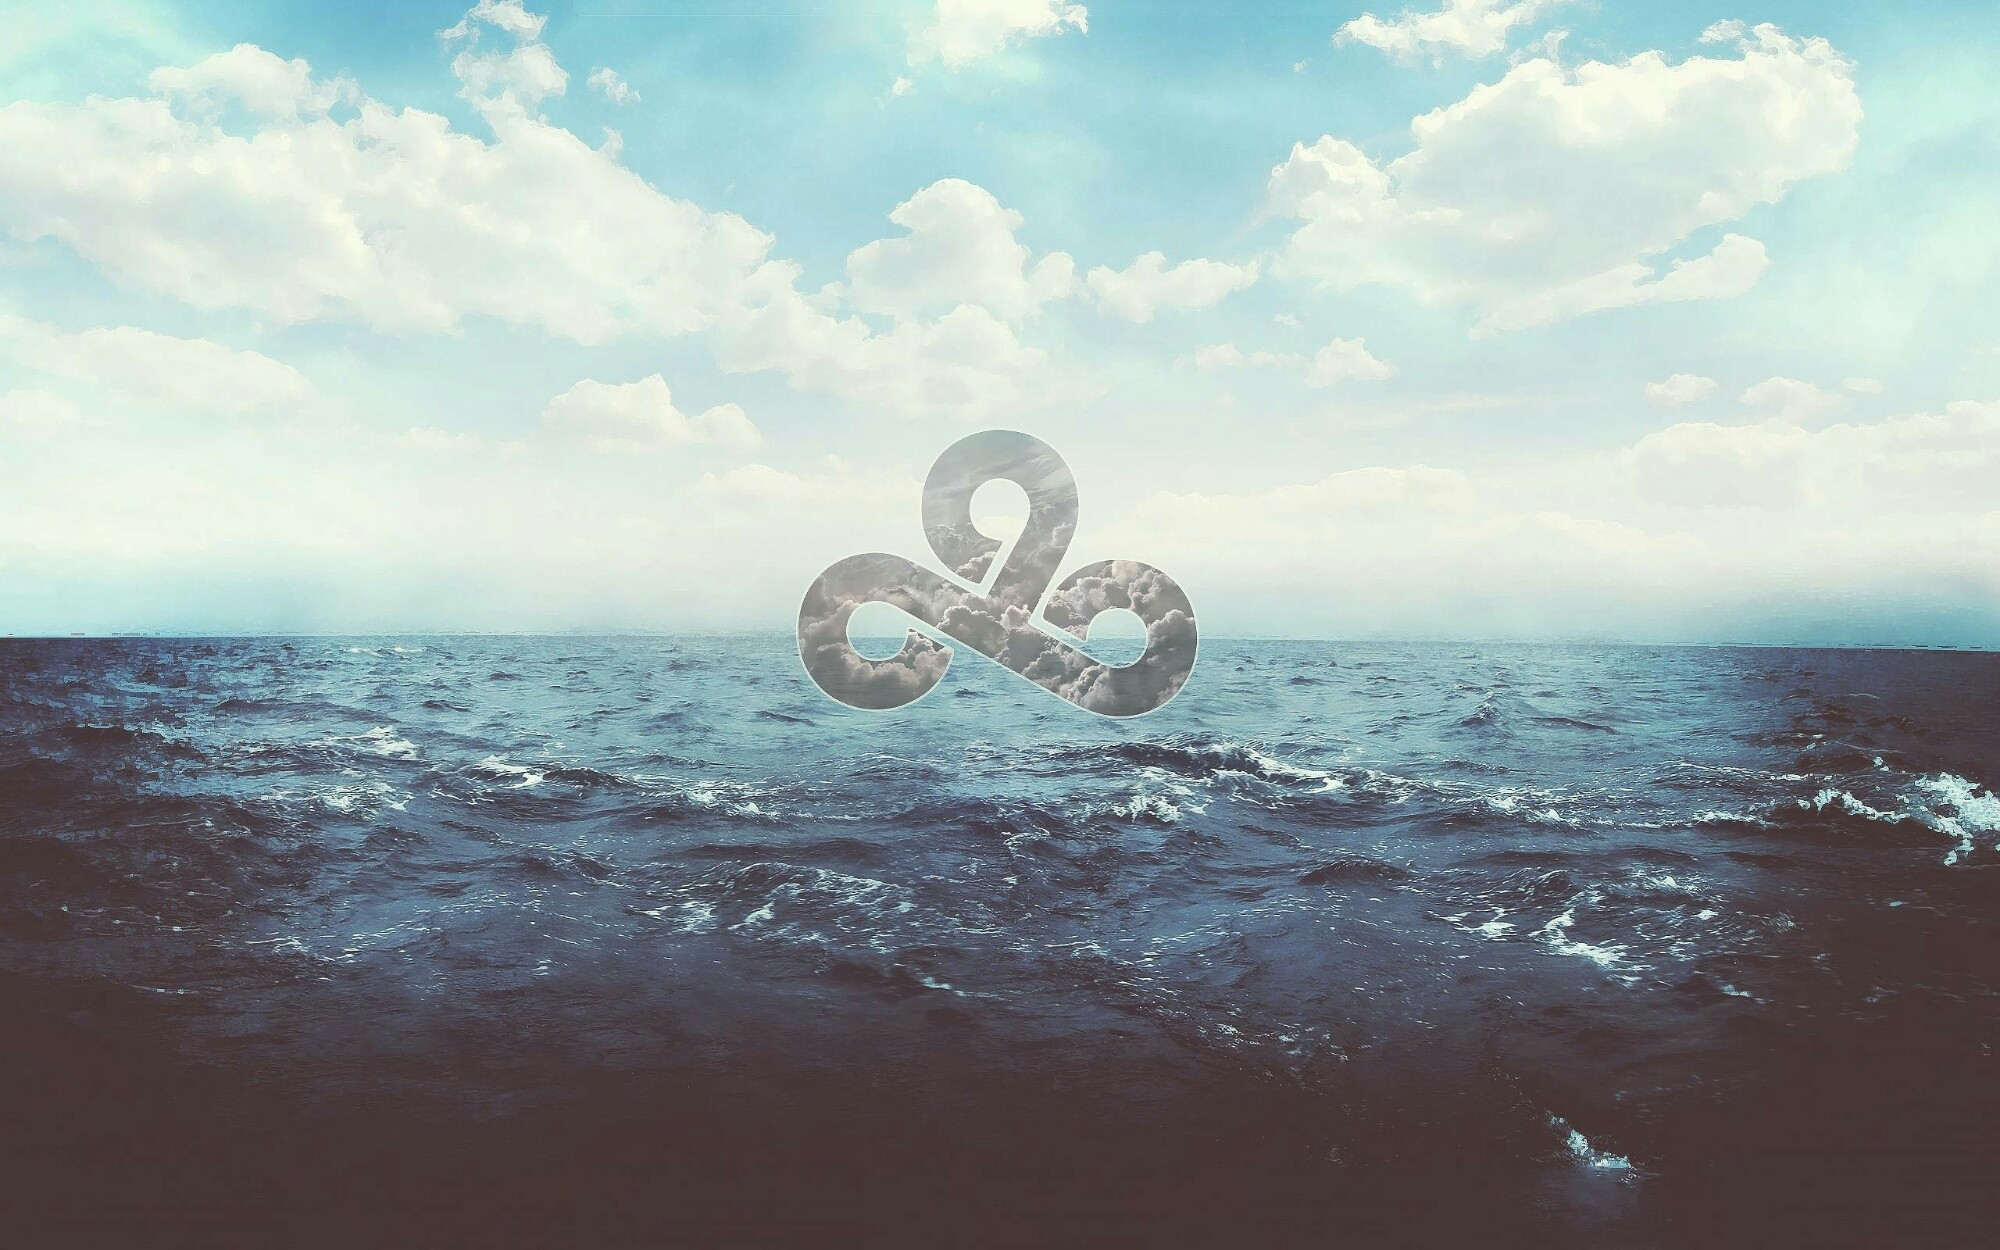 Cloud Nine Blue Sea Ocean Water And Sky Abstract Cover Photo Wallpaper .